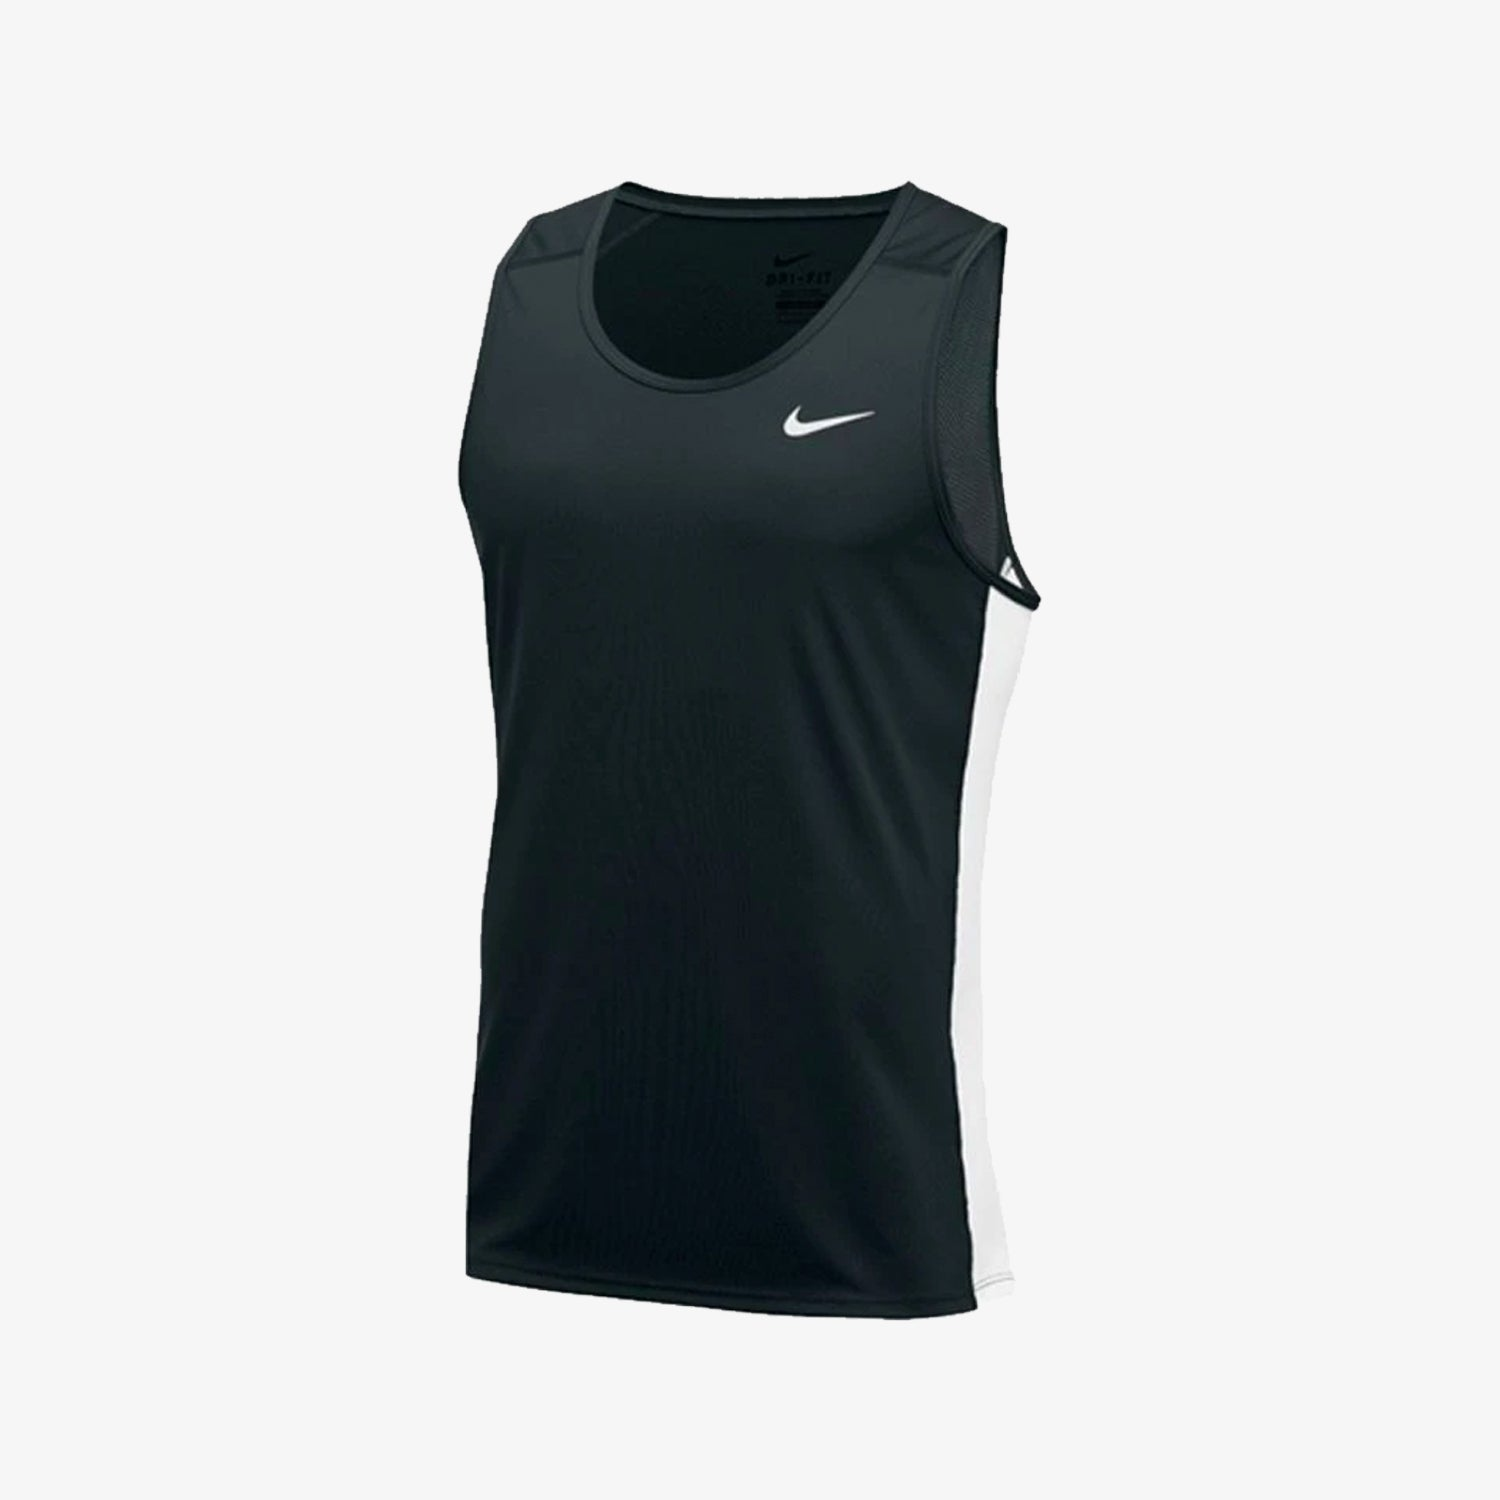 Men's Miller Tank Top - Black